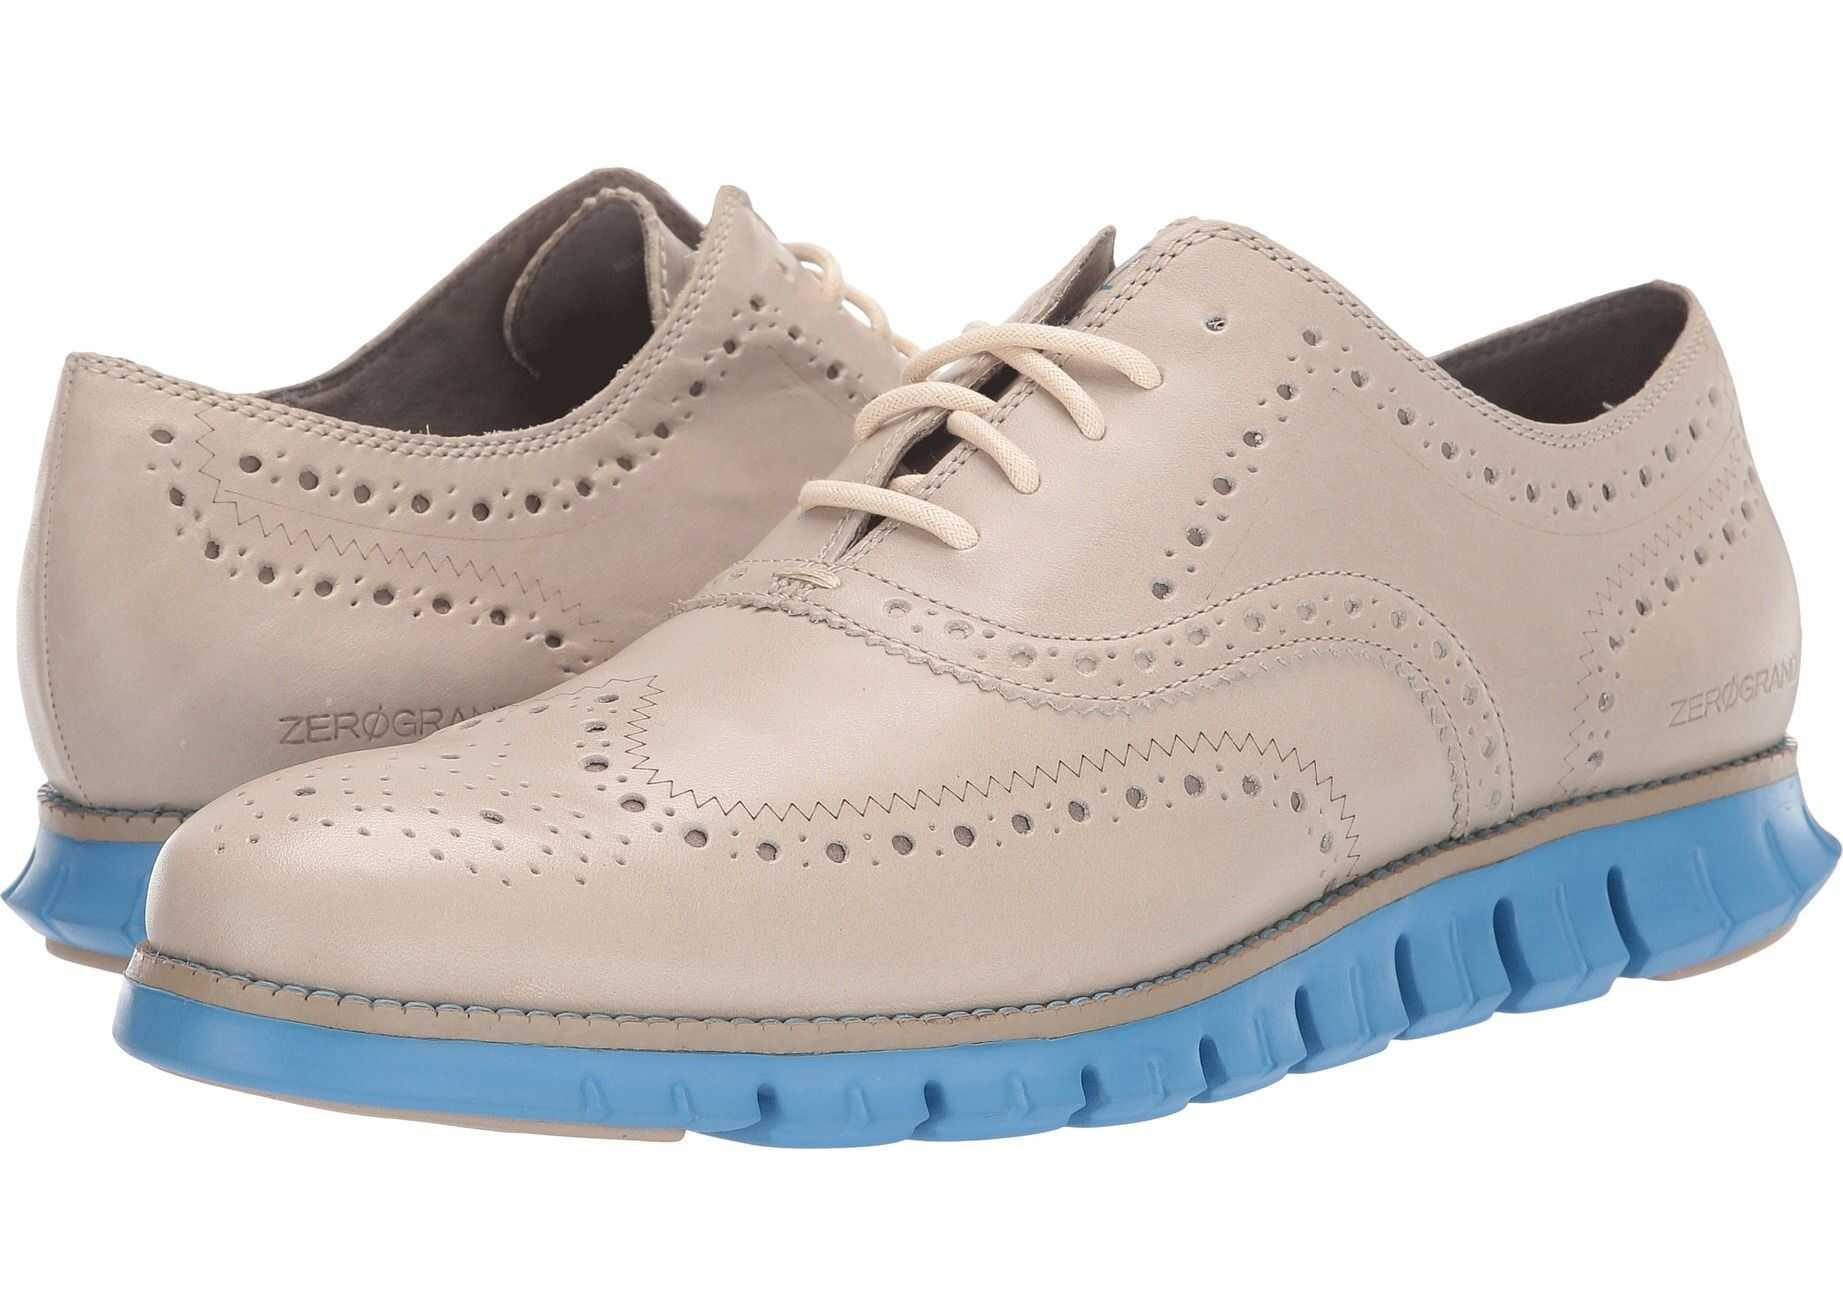 Cole Haan Zerogrand Wing Tip Oxford Hawthorn Leather/Brazilian Sand/Pacific Coast